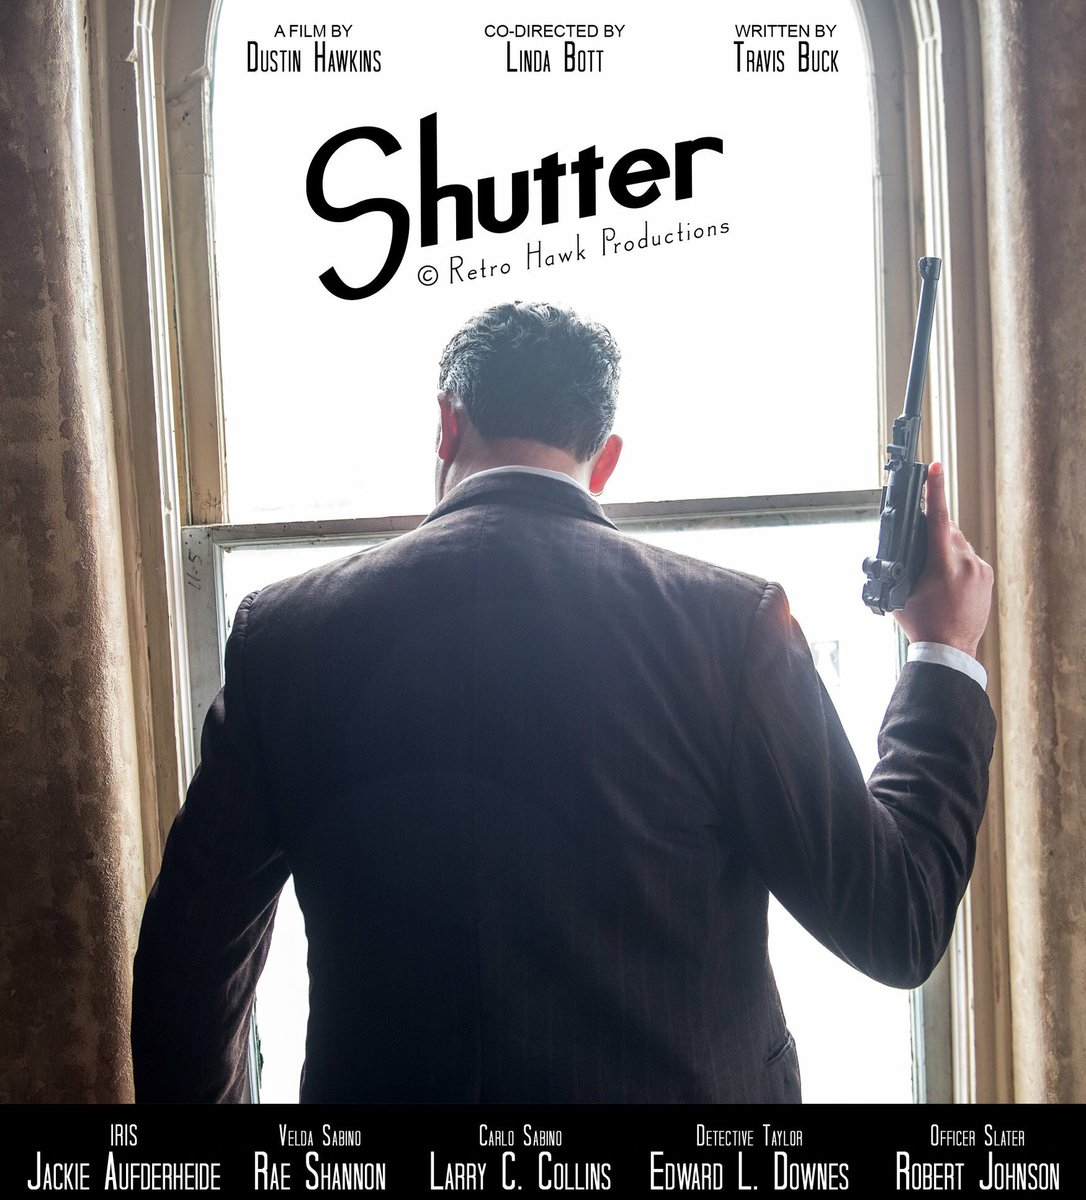 Shutter, my latest film project.  So many talented people involved.  Promotional photo by @photoguyscott68   #shutter #shutterfilm #retrohawkproductions #indiefilm #filmmaker #indiefilmmaker #film #filmmaking<br>http://pic.twitter.com/H5xEIl8g2K